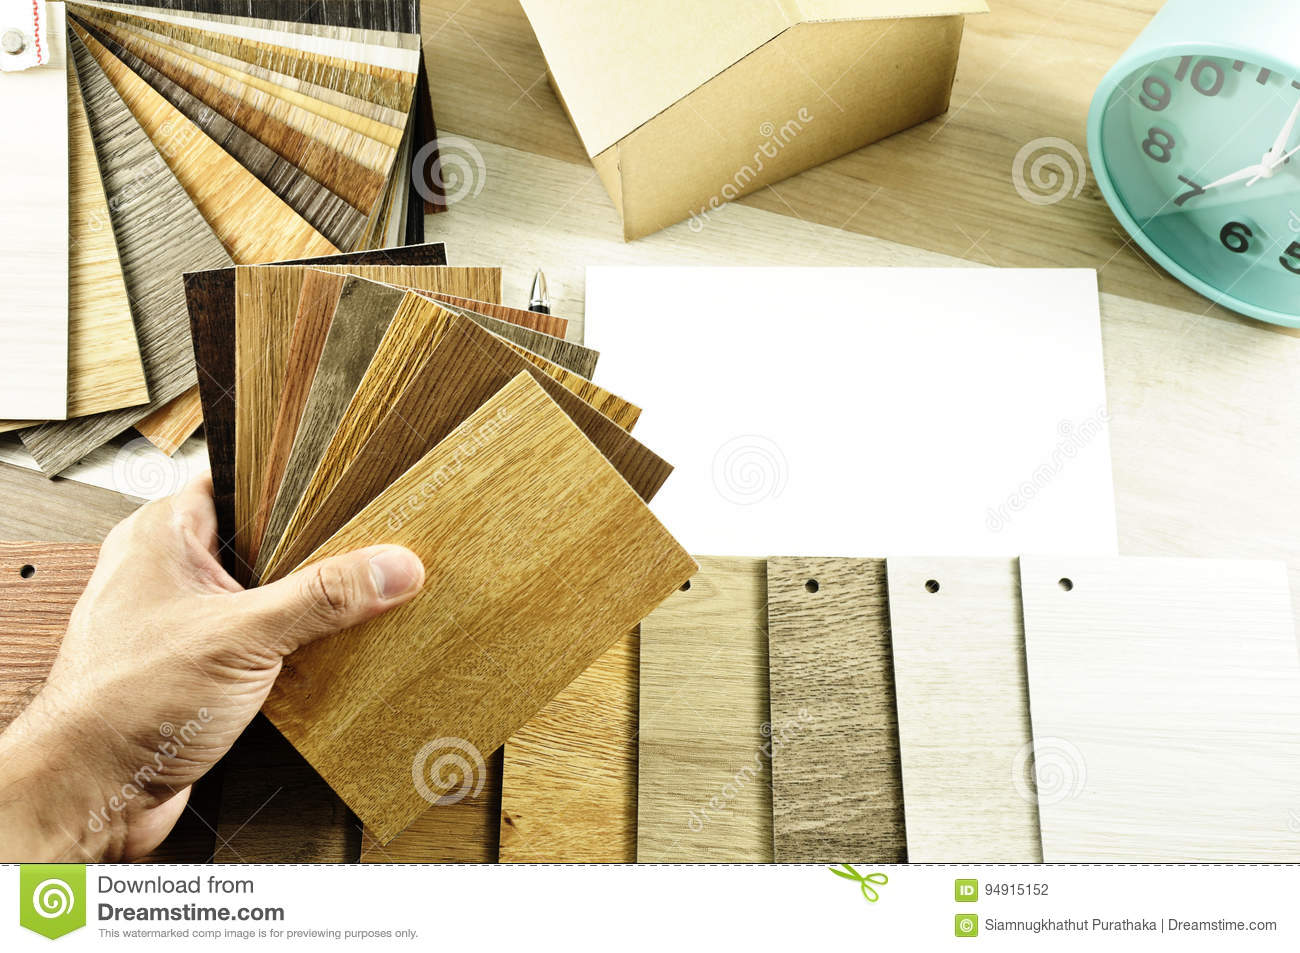 Top view of Architects & Interior designers hands design to choose wood floor materials on table in workplace in the morning.